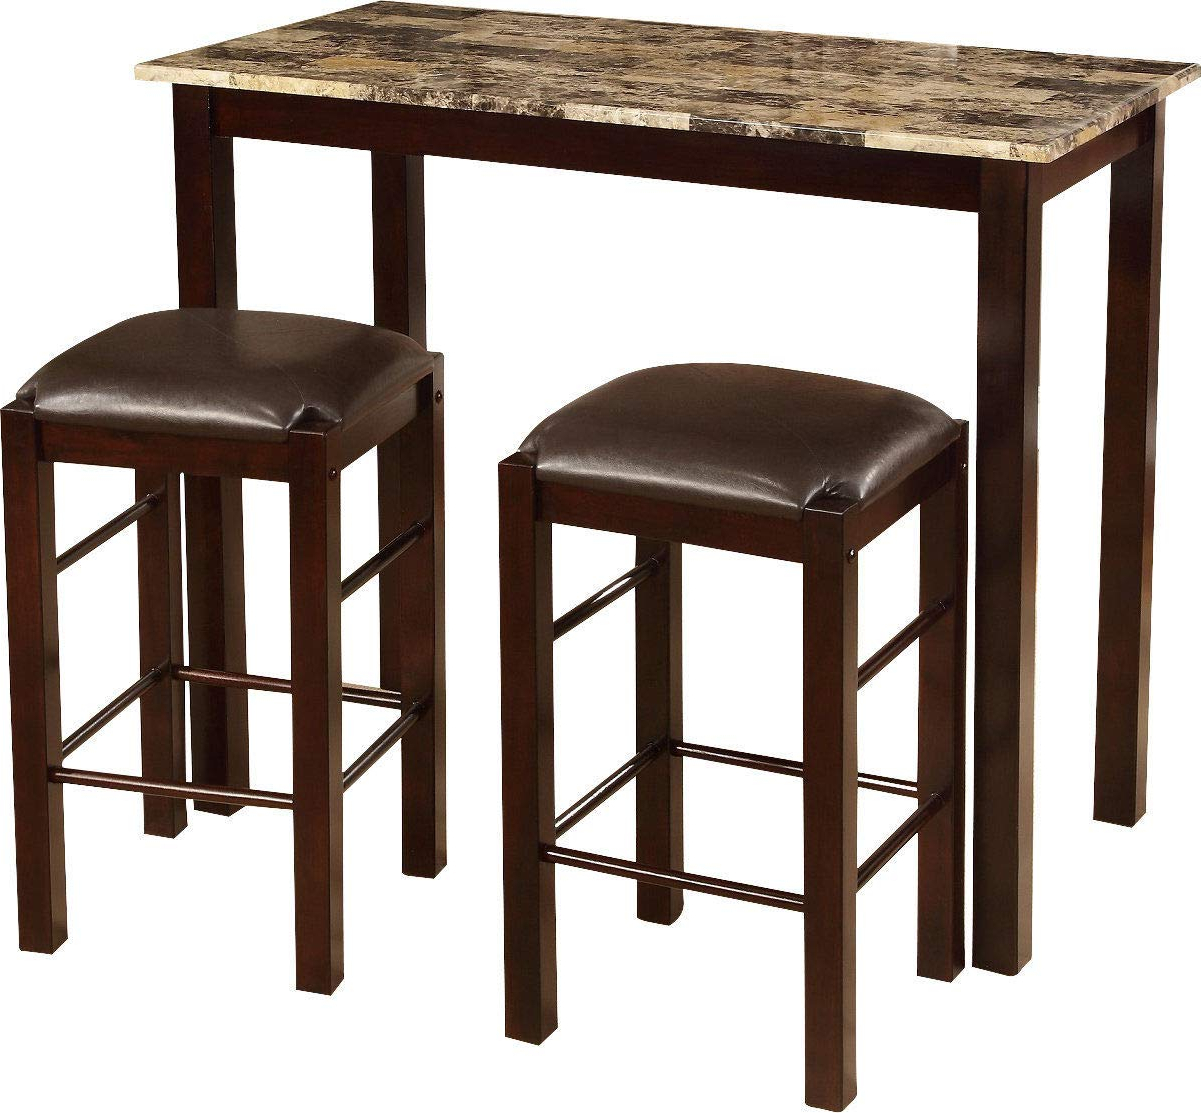 Penelope 3 Piece Counter Height Wood Dining Sets Pertaining To Most Current Amazon – Winston Porter Penelope 3 Piece Counter Height Wood (View 15 of 20)